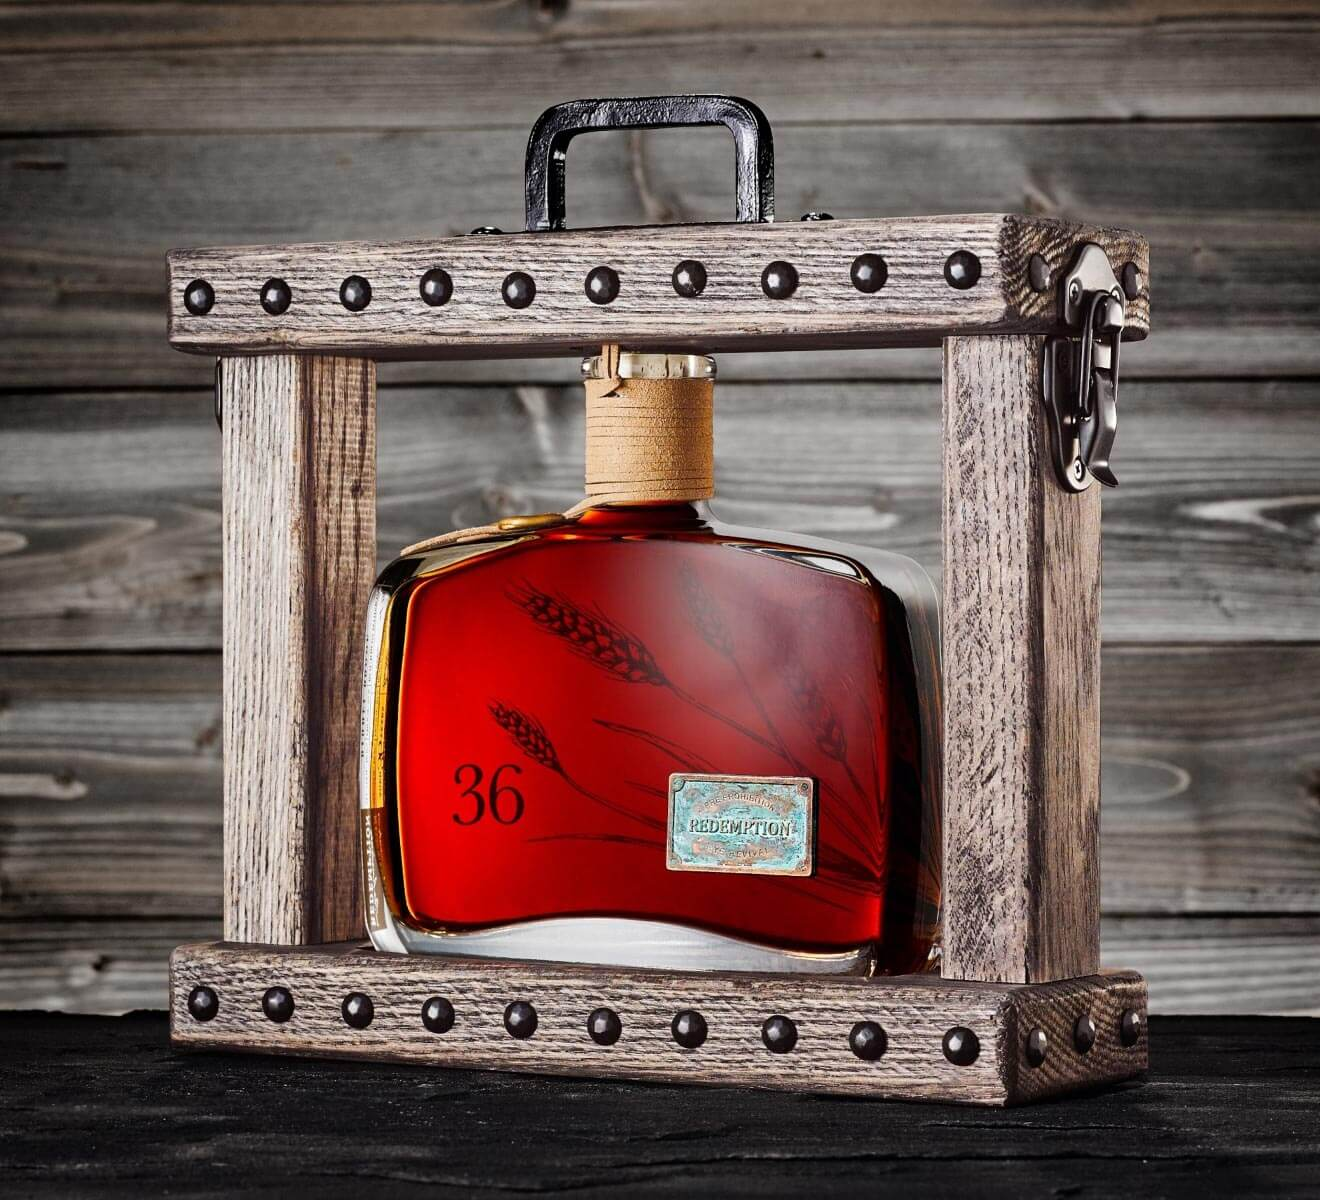 Redemption 36-Year-Old Bourbon, bottle and packaging